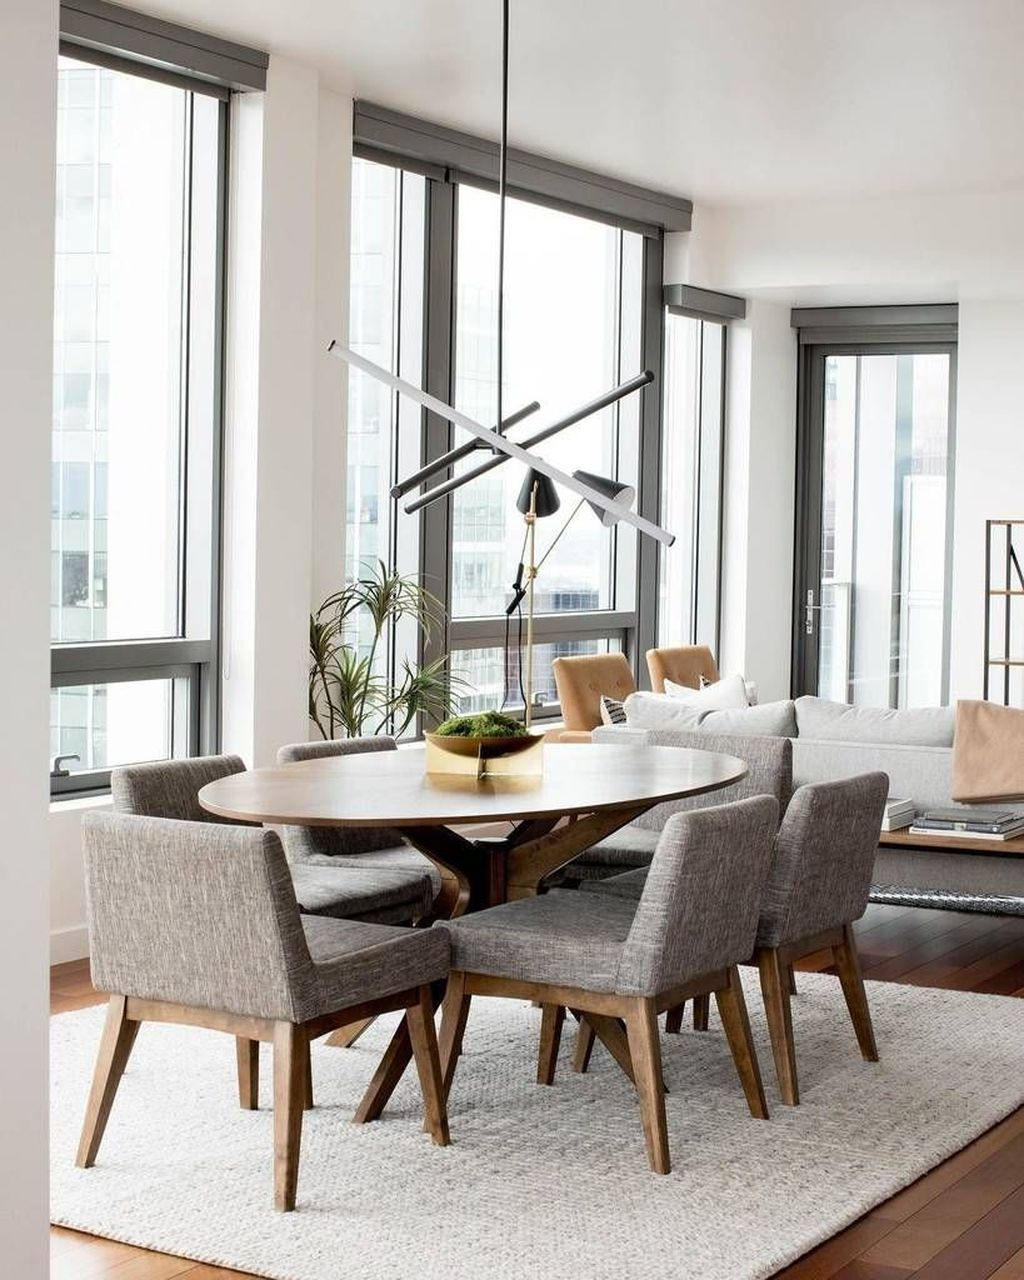 Amazing Modern Dining Room Design Ideas You Will Love 28